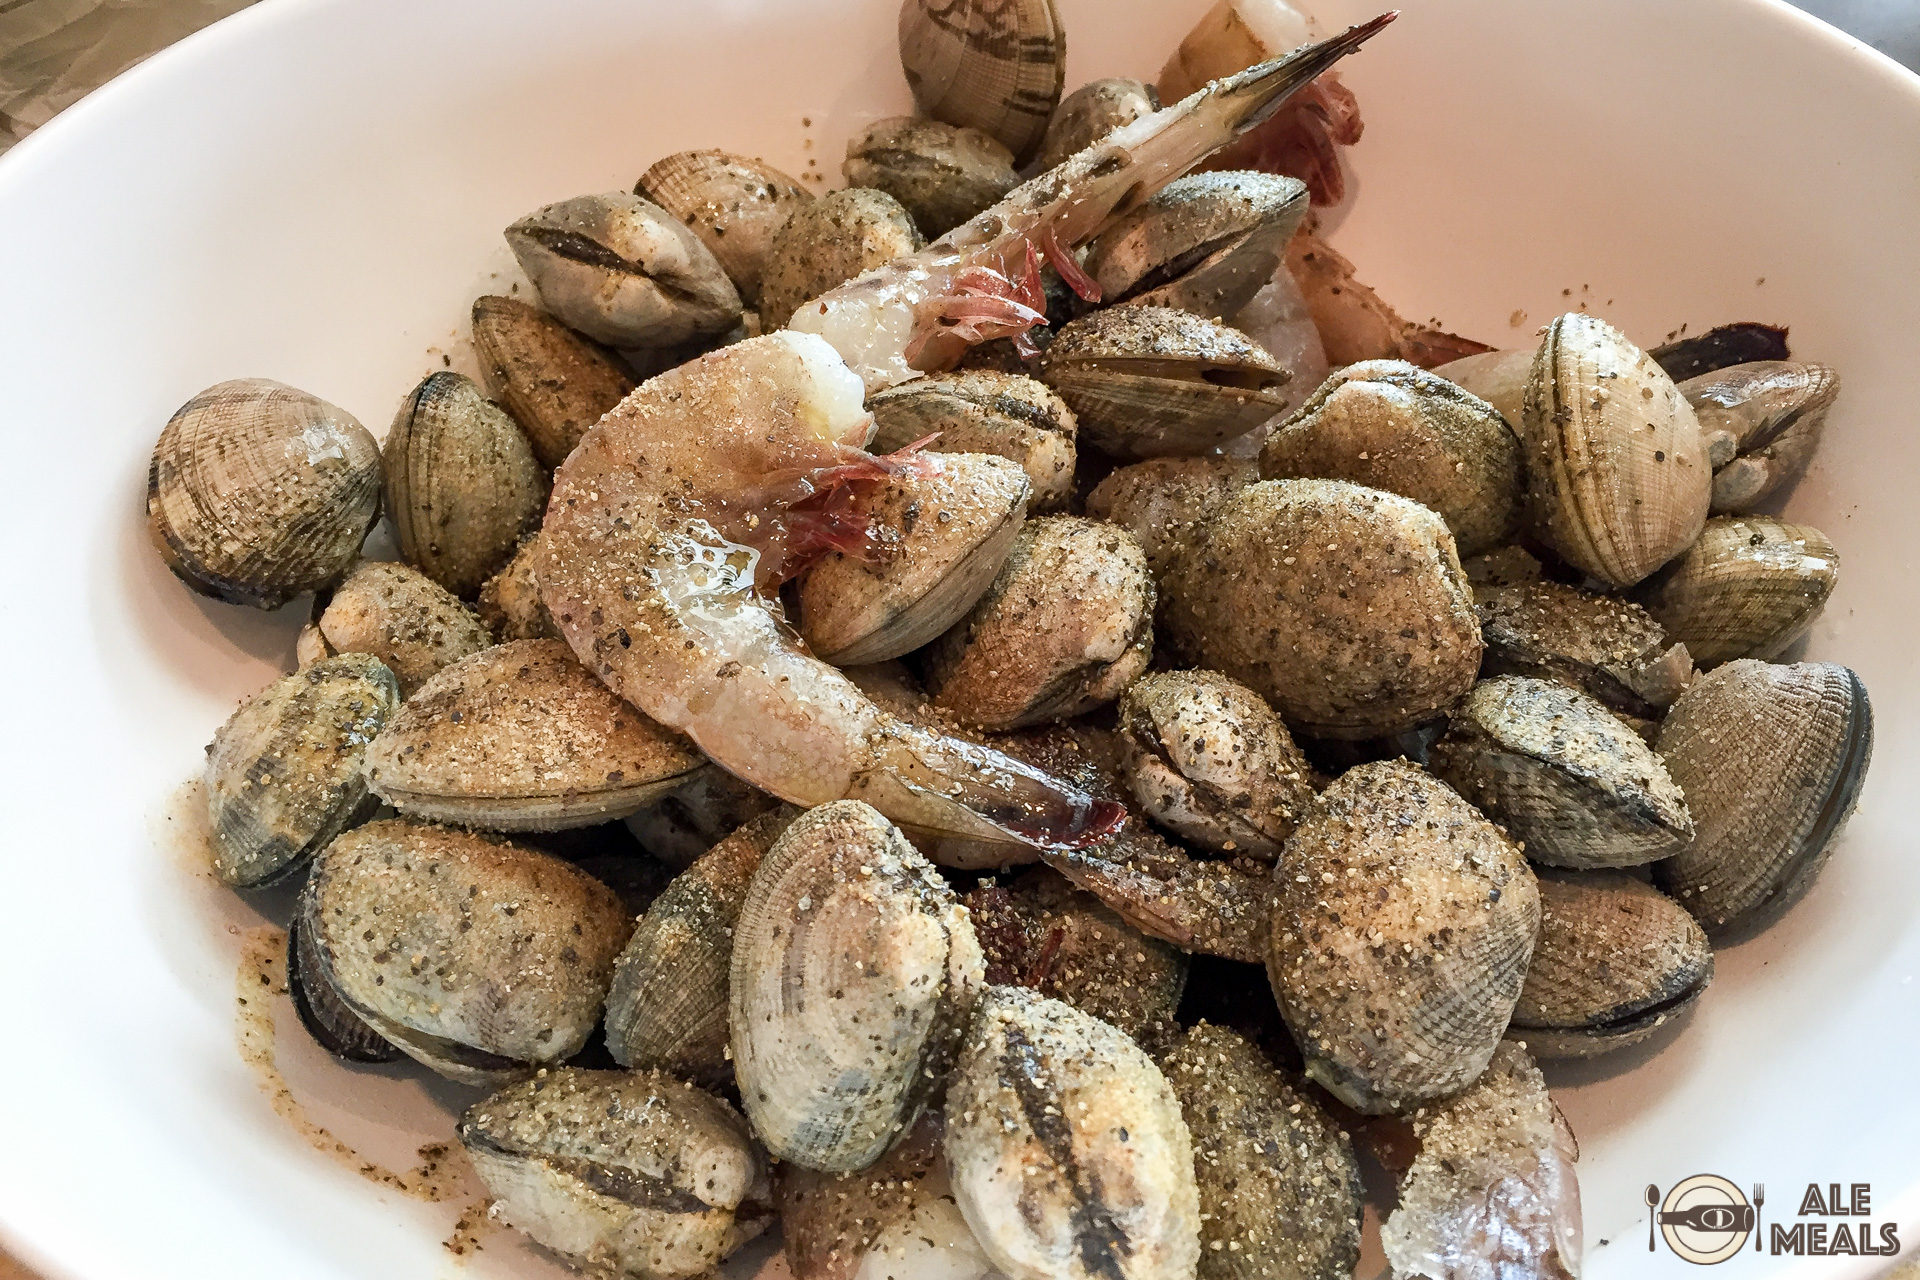 Seasoned clams and prawns